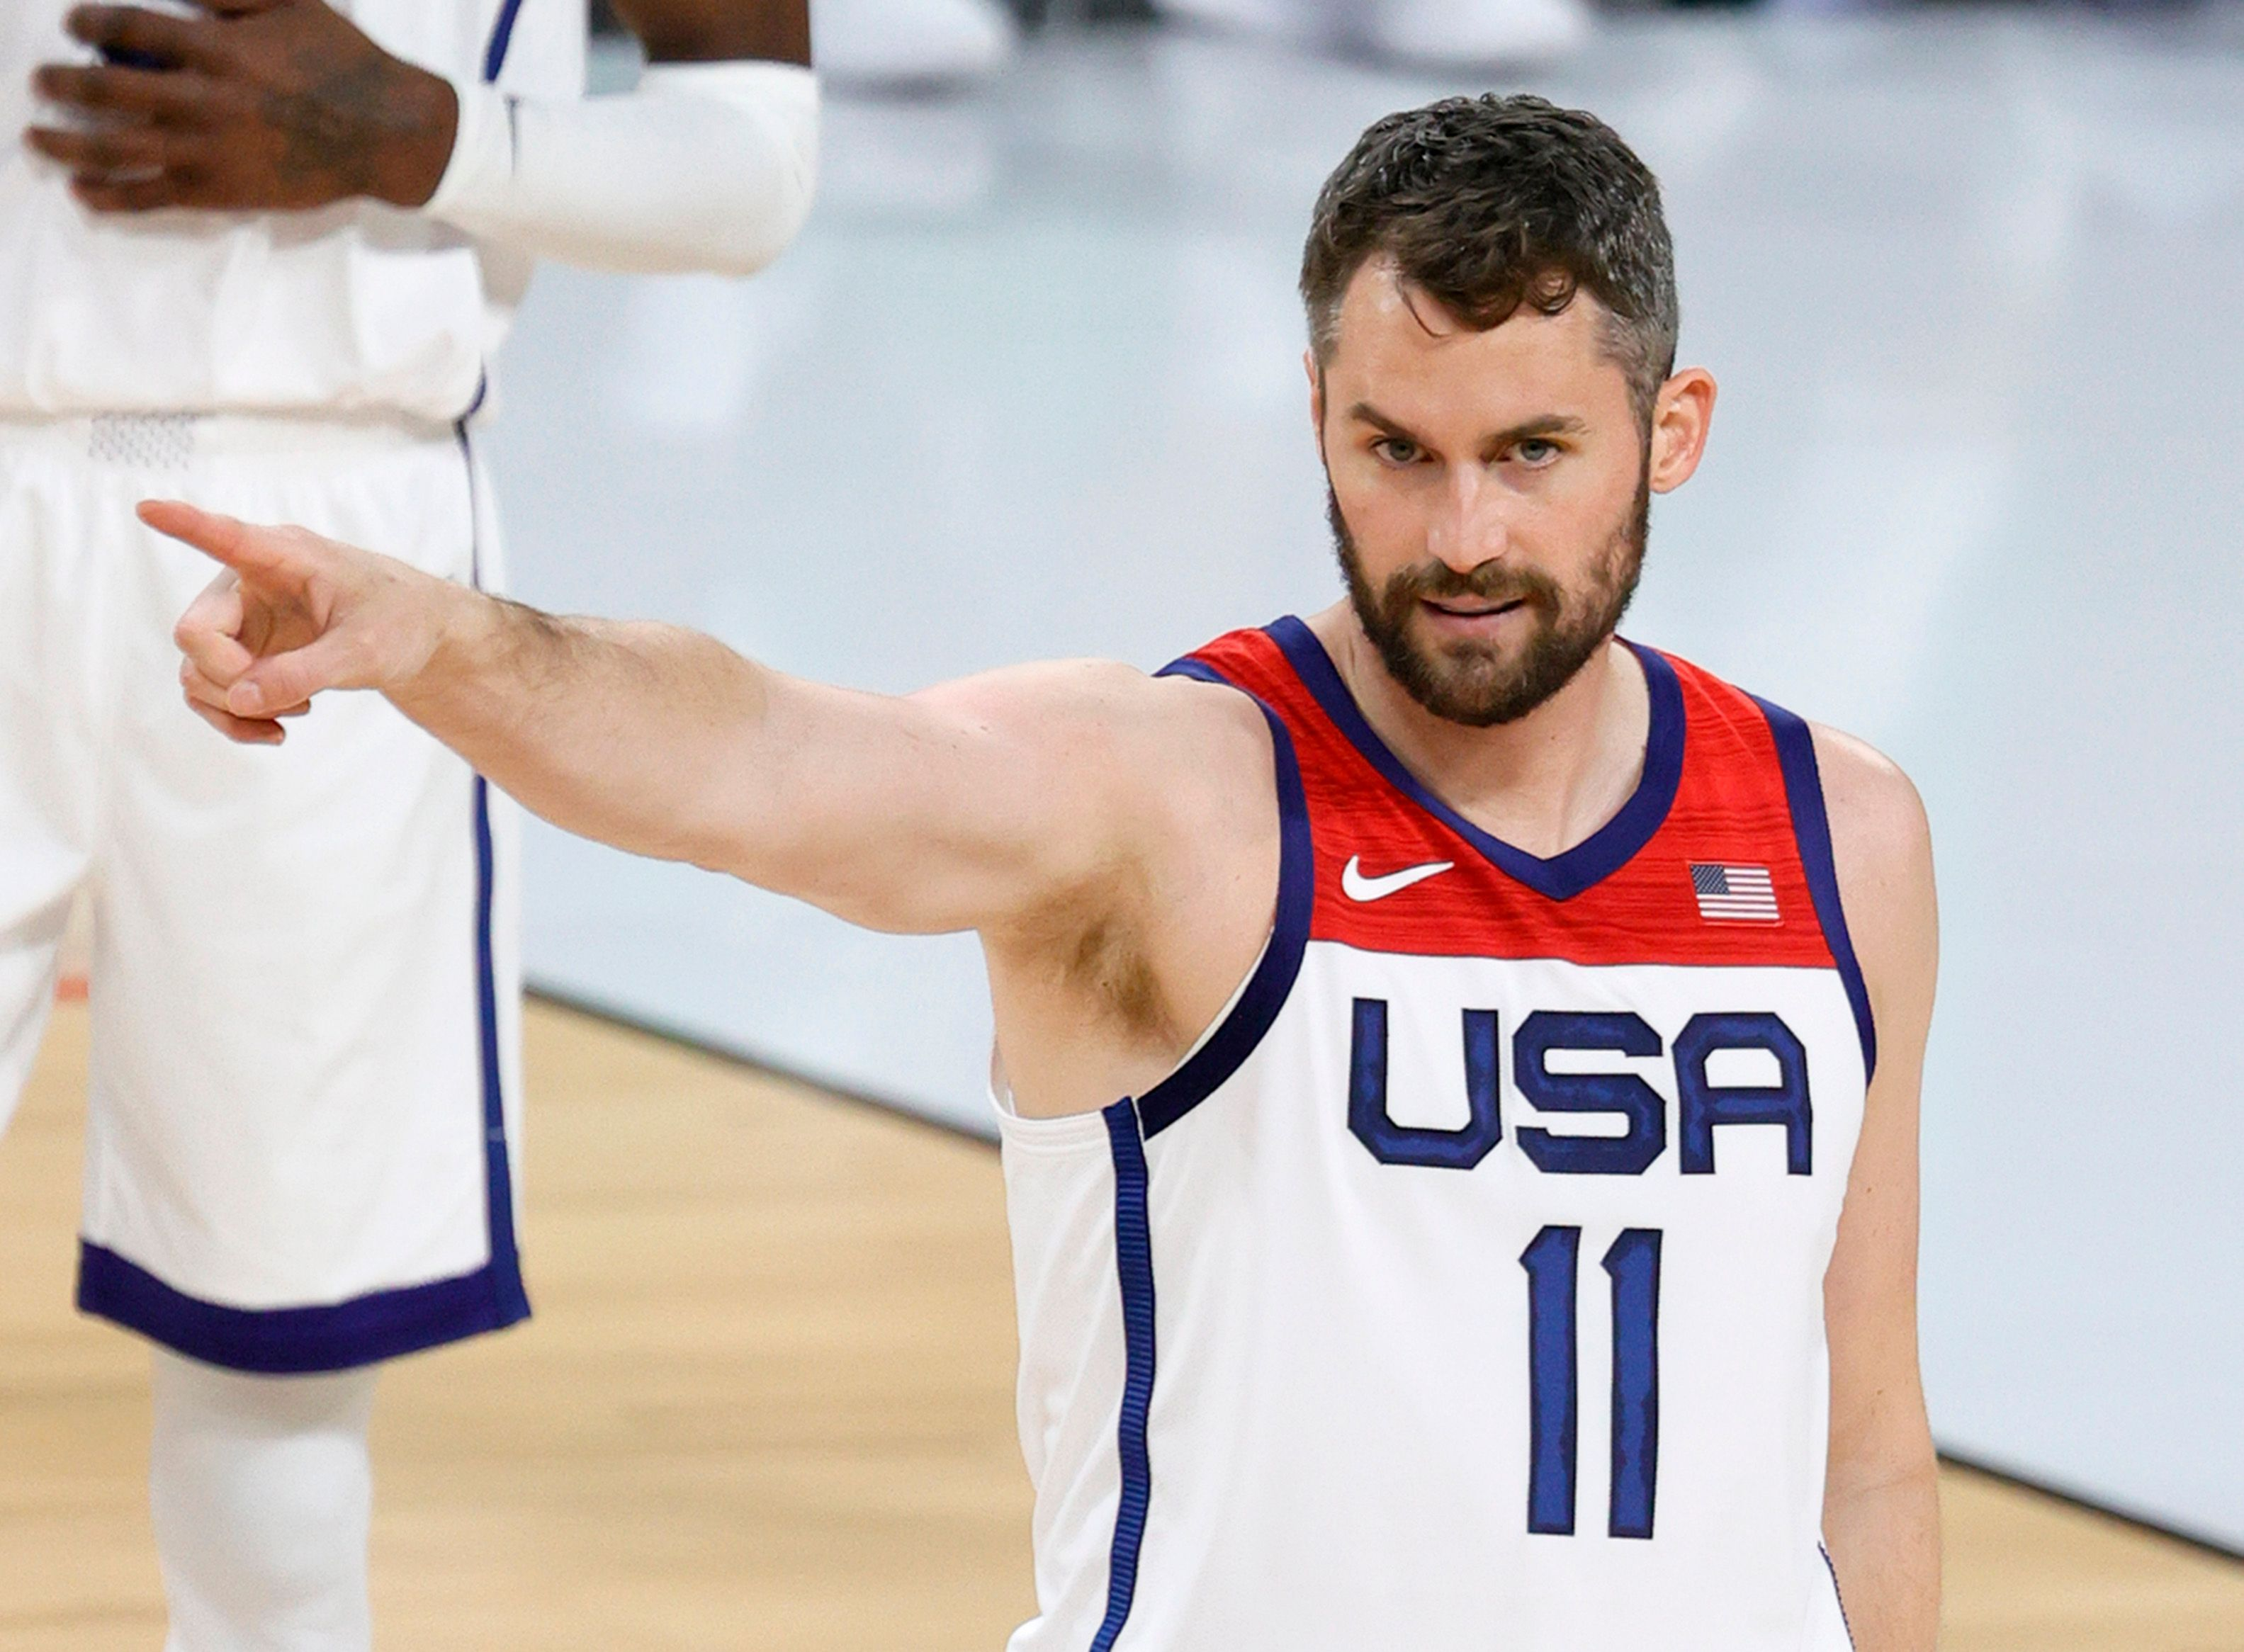 Kevin Love wearing the Team USA jersey